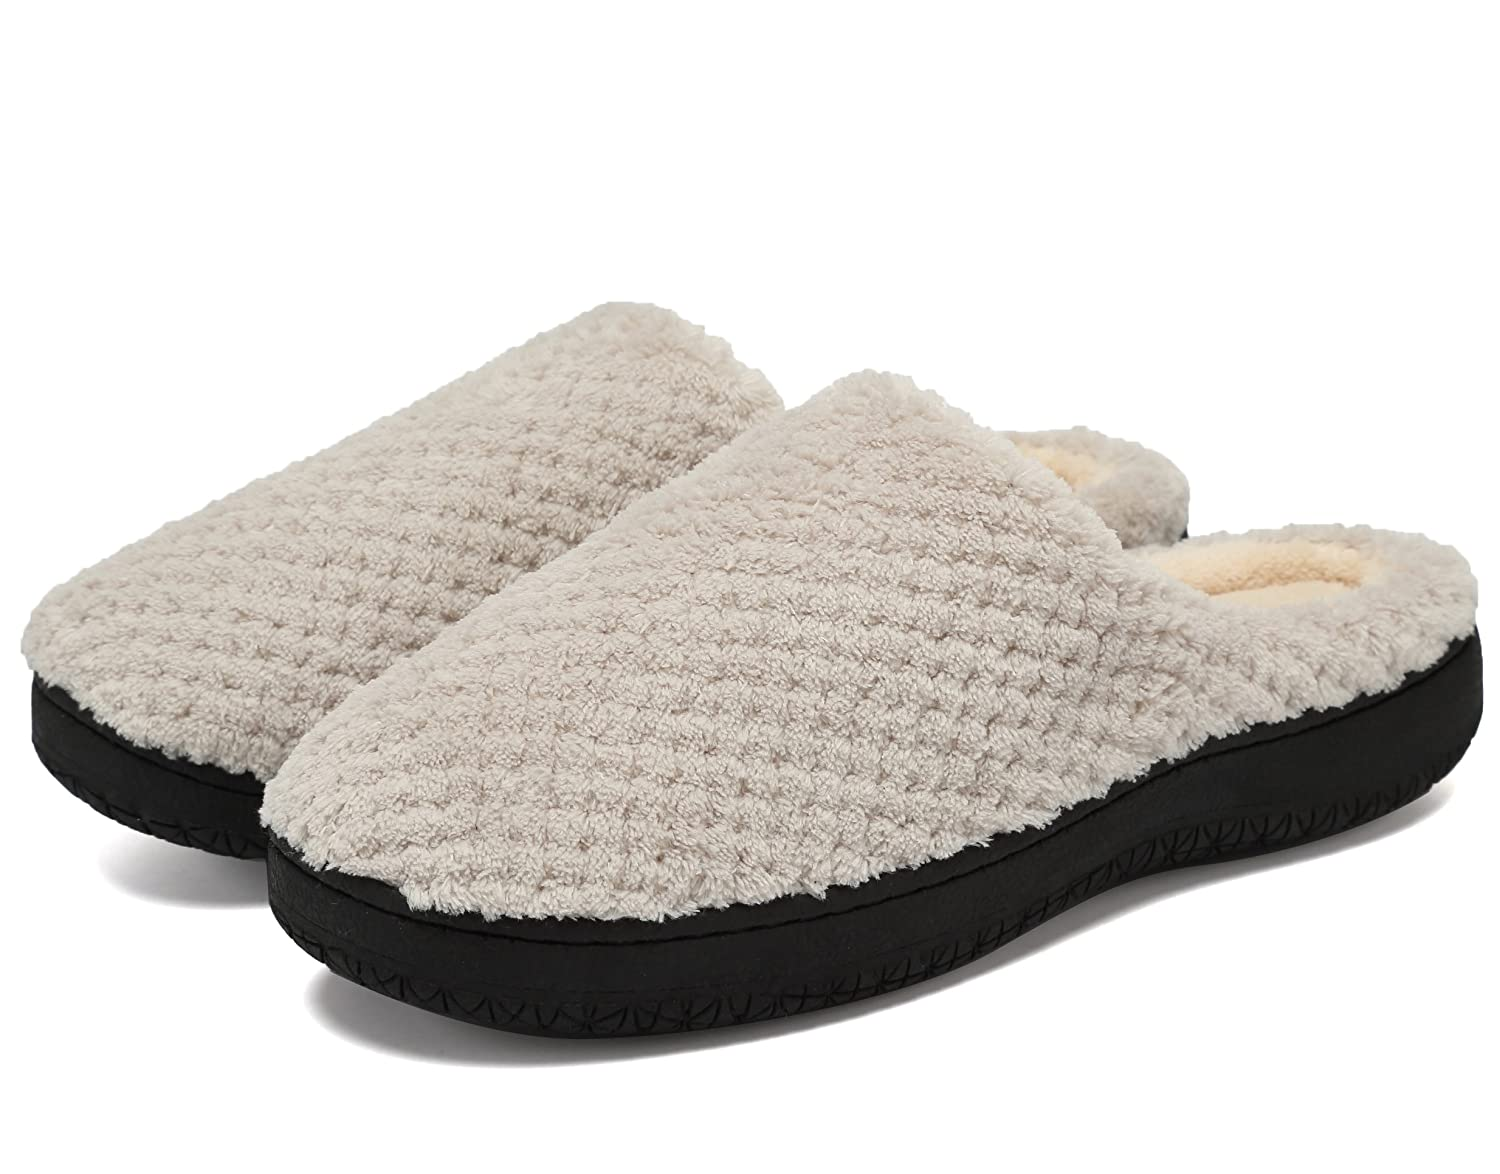 Unisex Winter Clogs Indoor Slippers